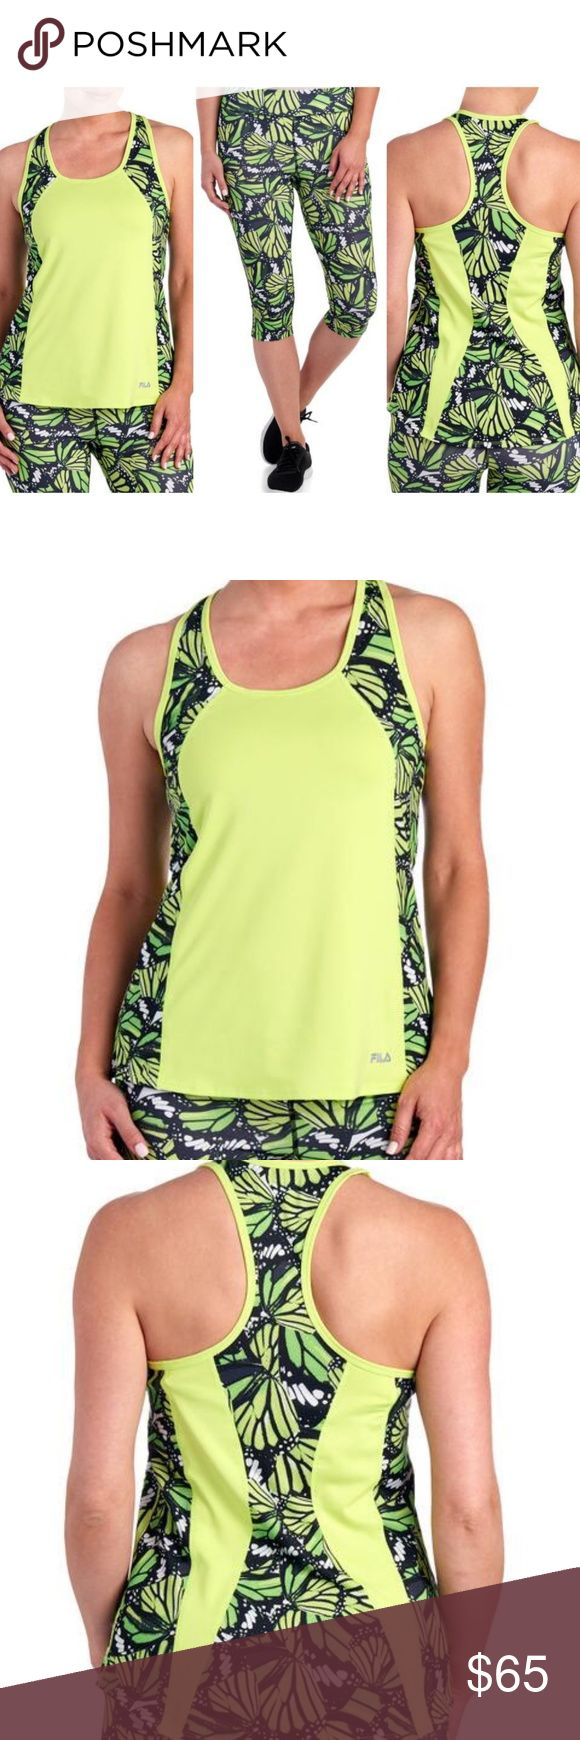 Neon Green Fila Athletic Work Out Bundle Outfit Chic and sporty, this moisture wicking knit racerback tank from Fila features a mesh embossed paneling patterned in a butterfly print for a fashion-forward take on your athletic gear. Size medium. NWT. Fila Tops